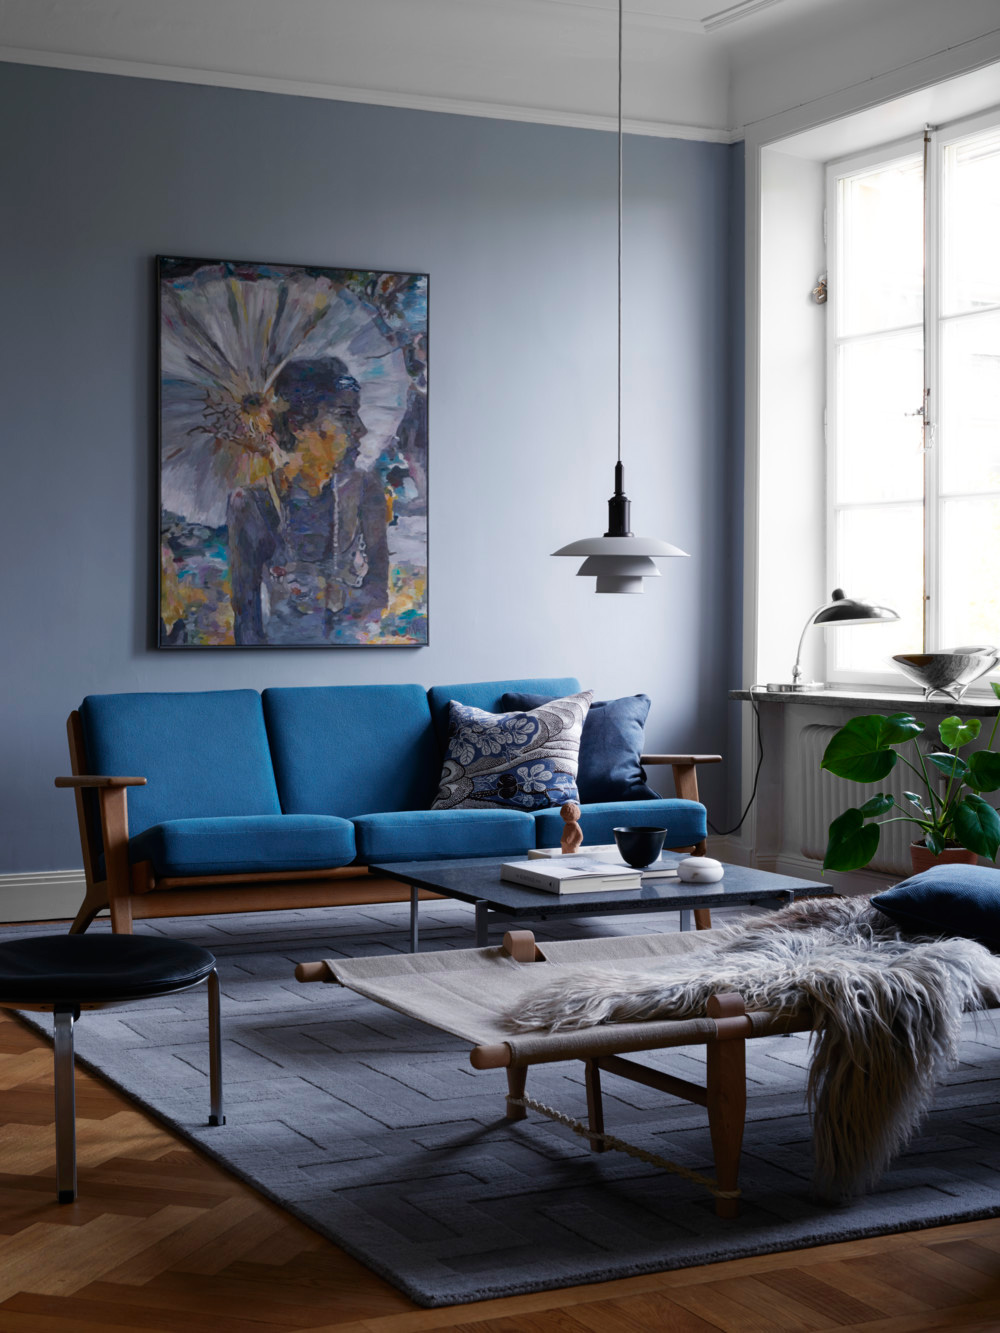 Asthma allergy nordic is a collaboration between the asthma and allergy organisations in norway, sweden and denmark. Take a Peek Into a Beautiful Home Filled with Scandinavian ...